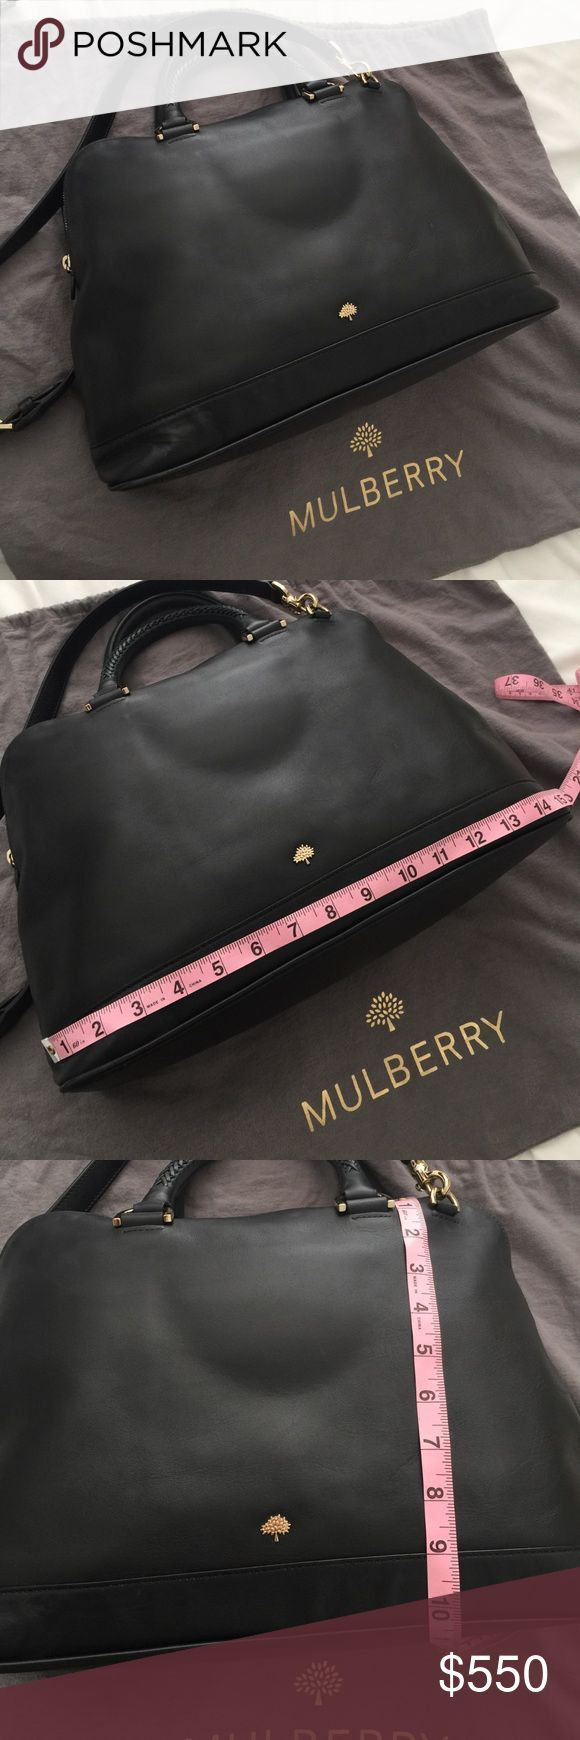 Mulberry bag. Authentic. Great condition Mulberry Bags Satchels #mulberrybag Mul#fashion #style #stylish #love #cute #photooftheday #nails #hair #beauty #beautiful #instagood #pretty #swag #pink #eyes #mulberrybag